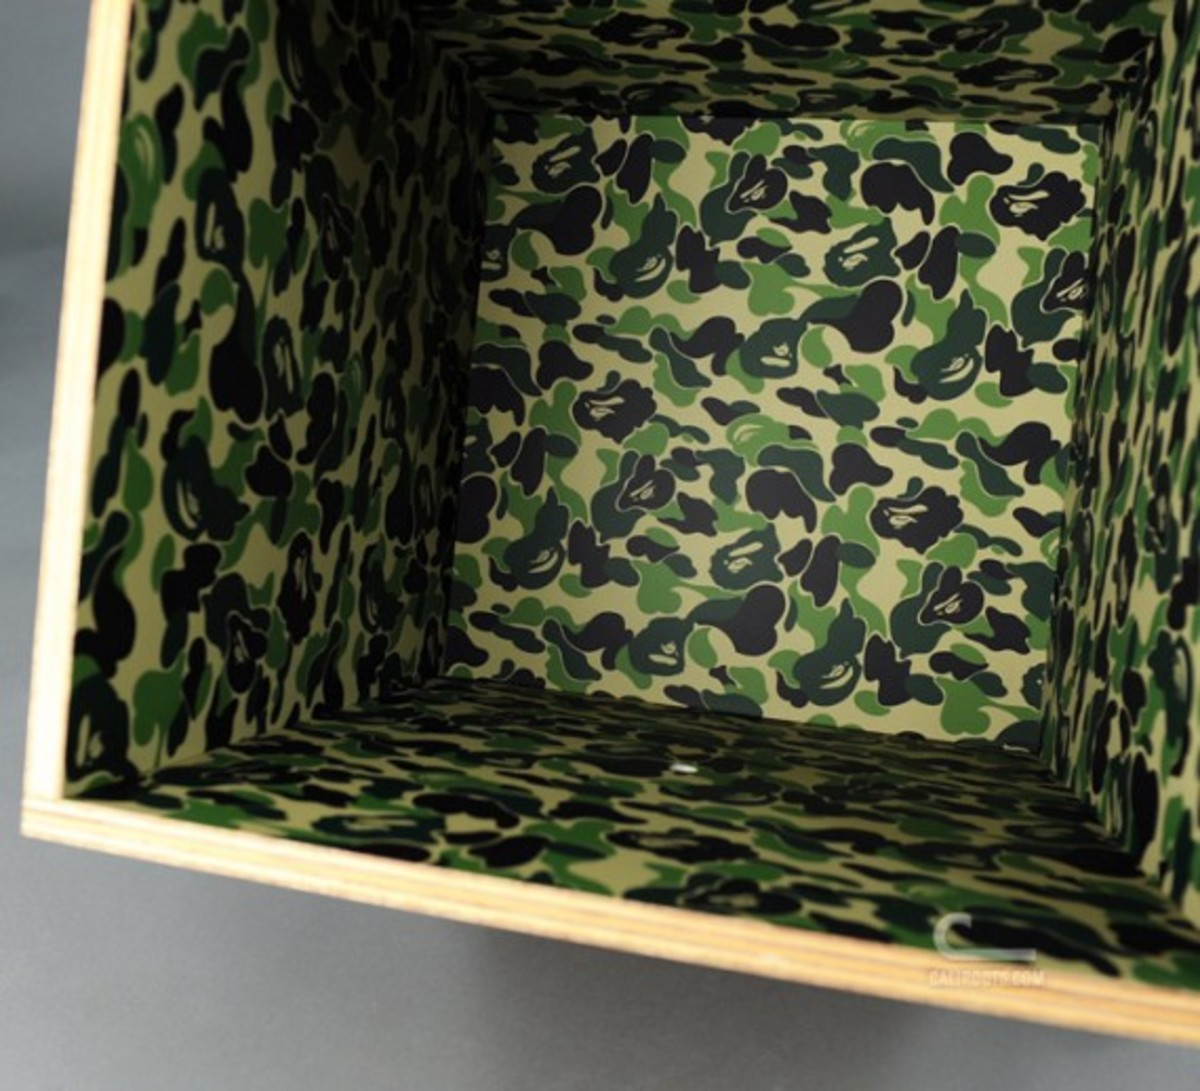 a-bathing-ape-medicom-toy-karimoku-bape-camo-furniture-05